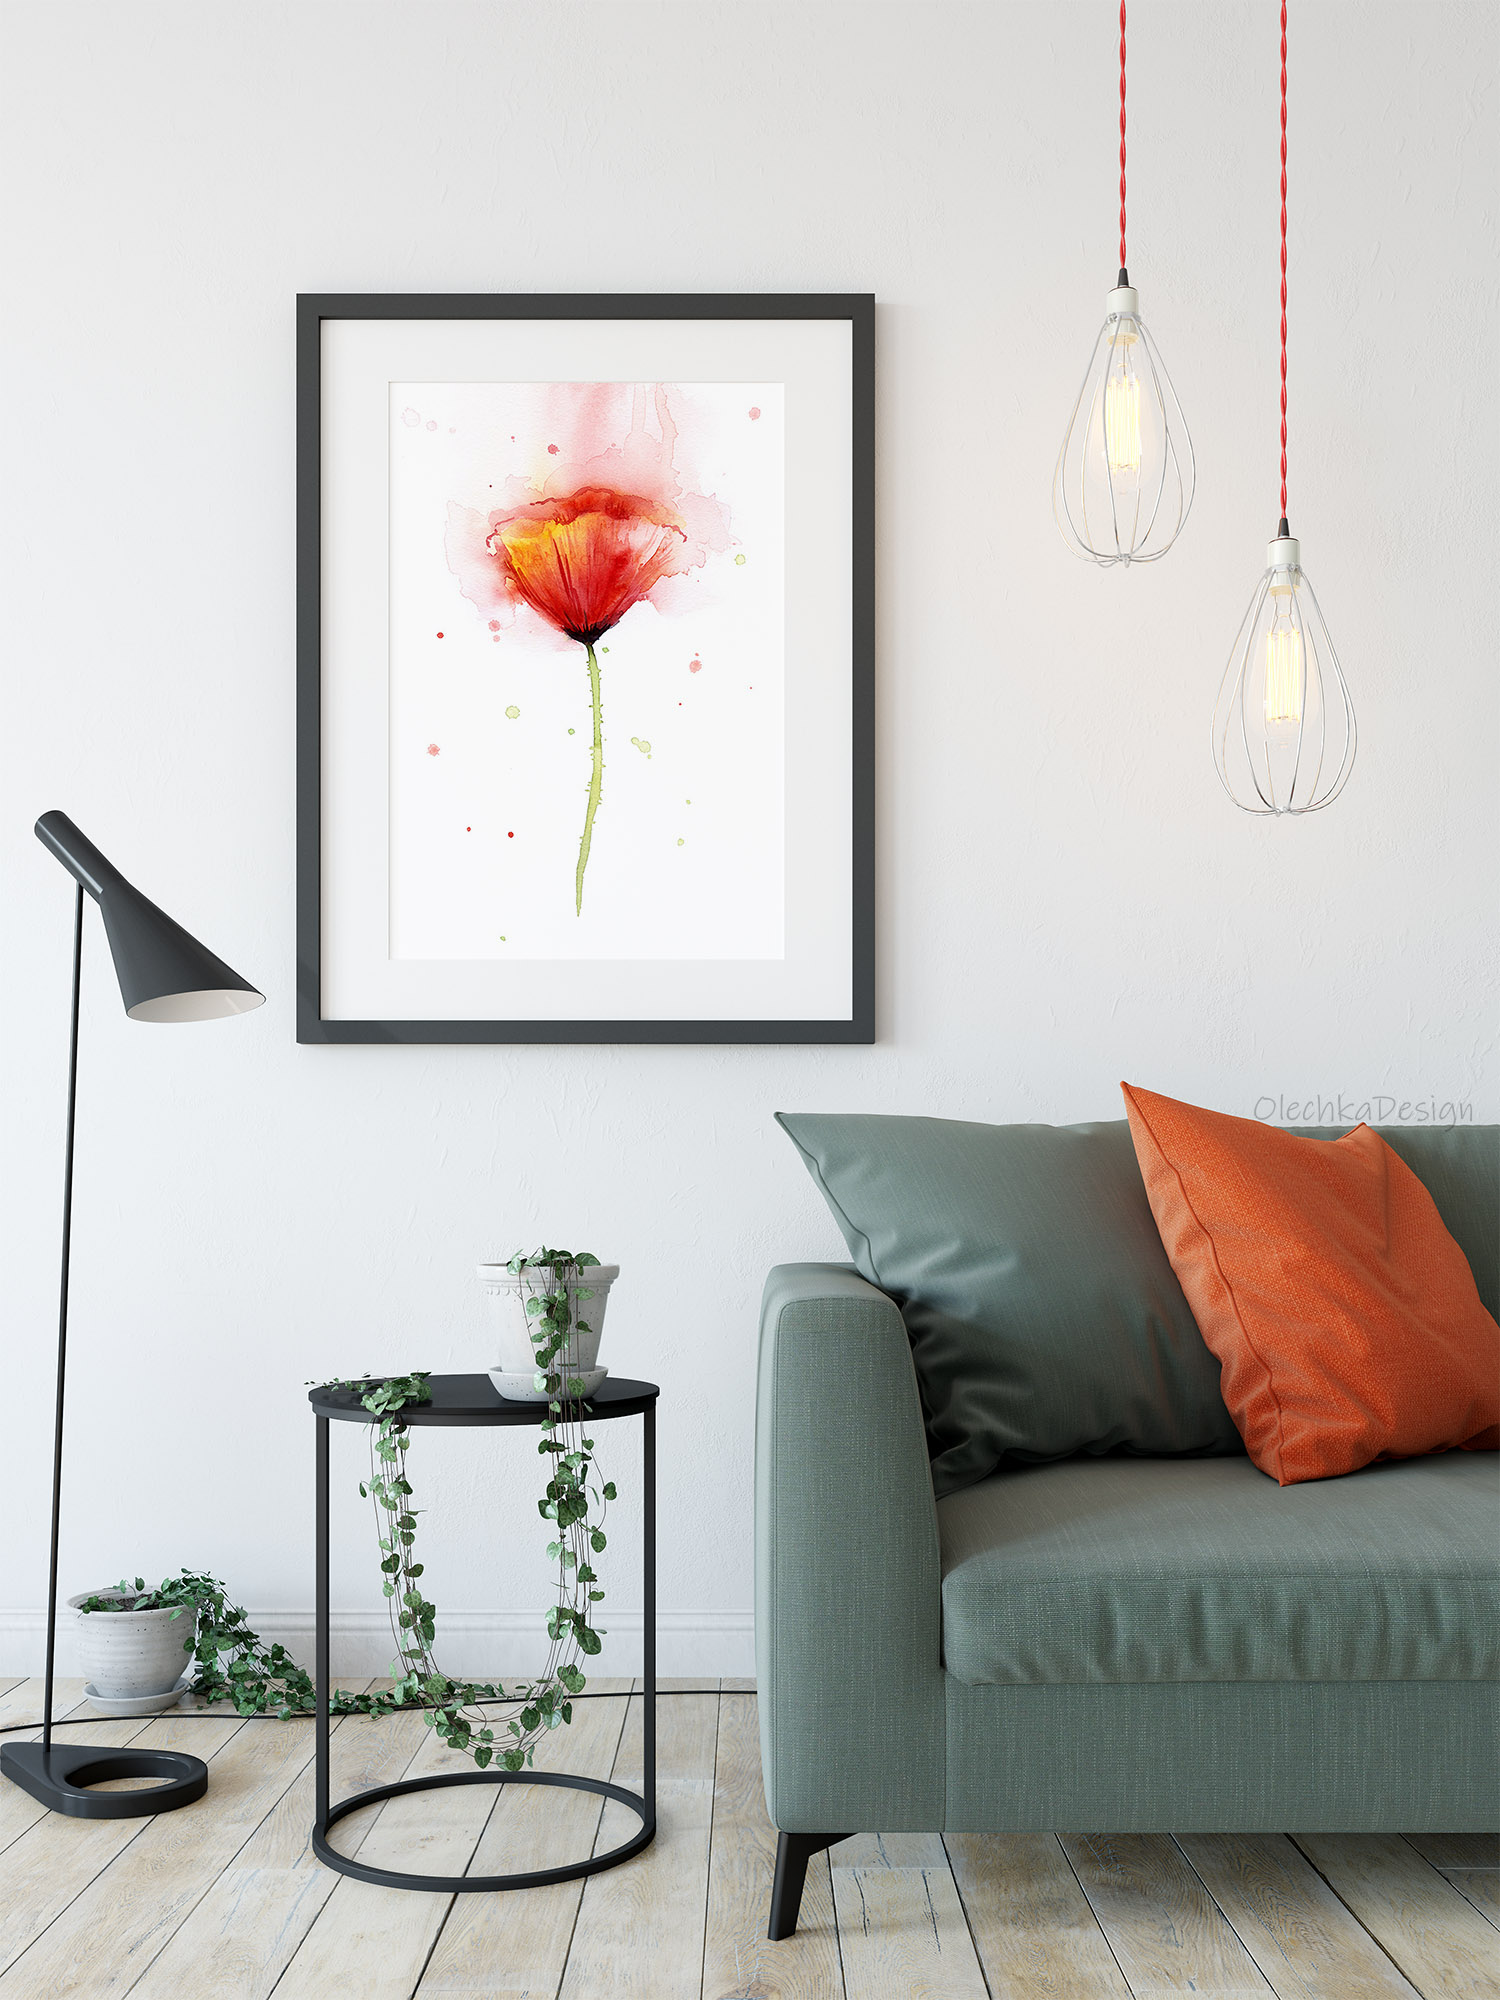 poppy-watercolor-art.jpg